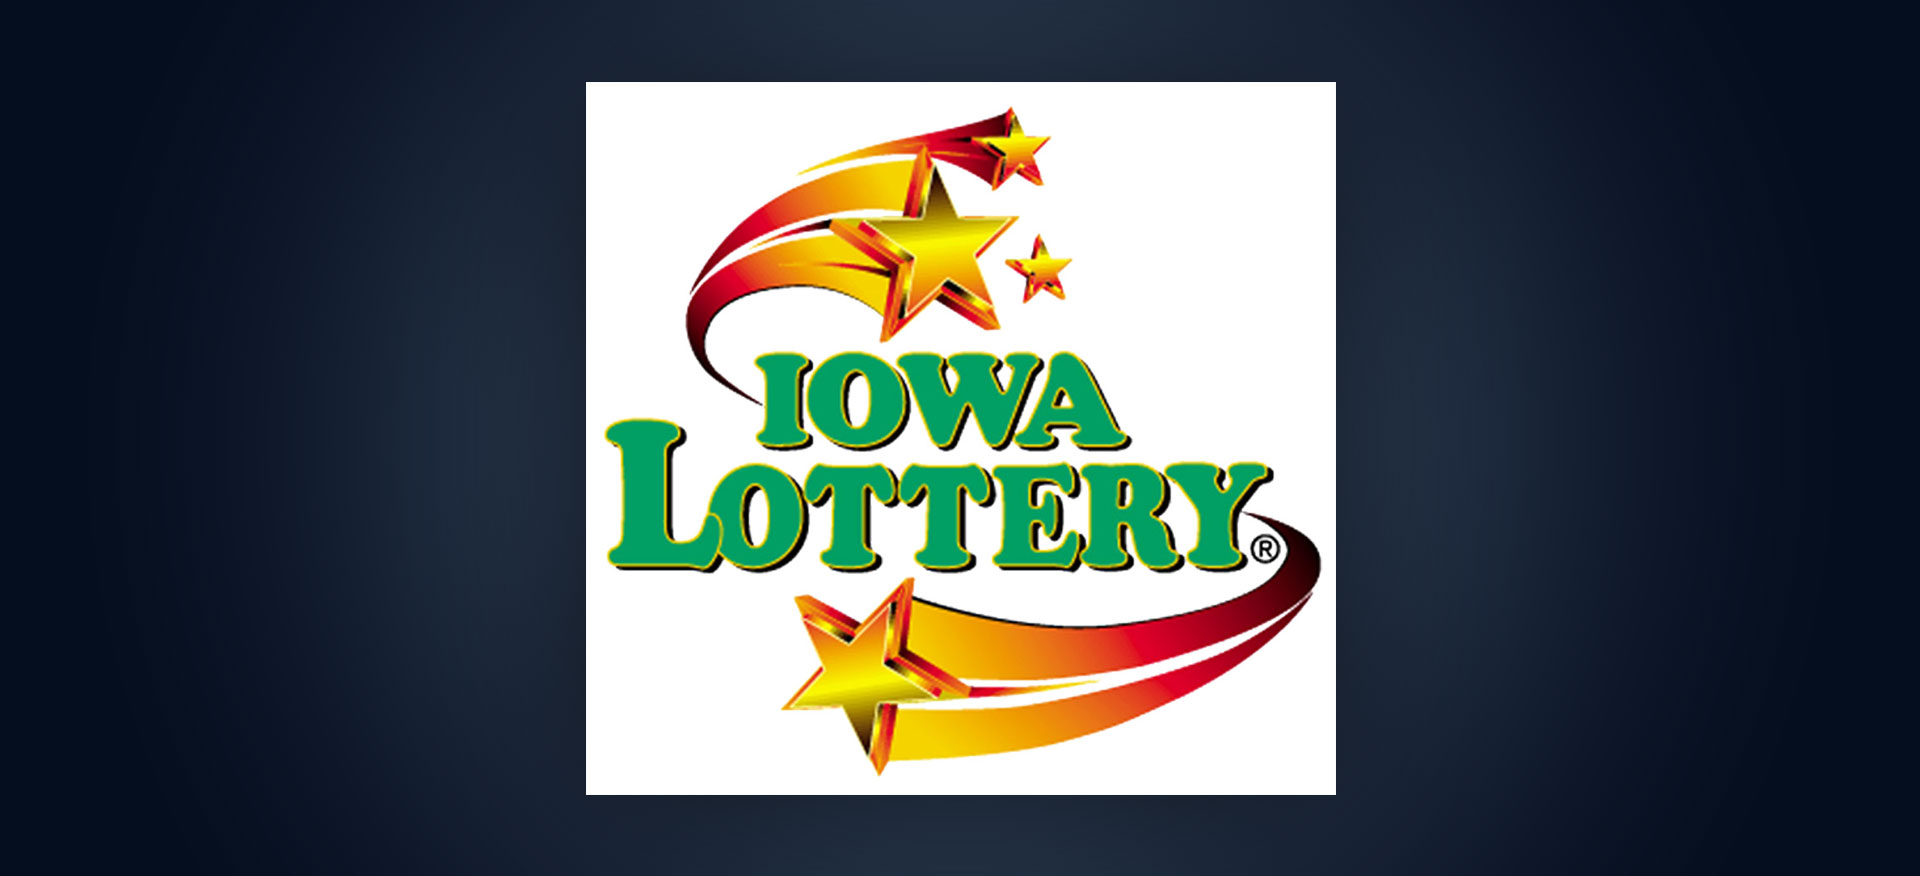 lottery odds for iowa lottery